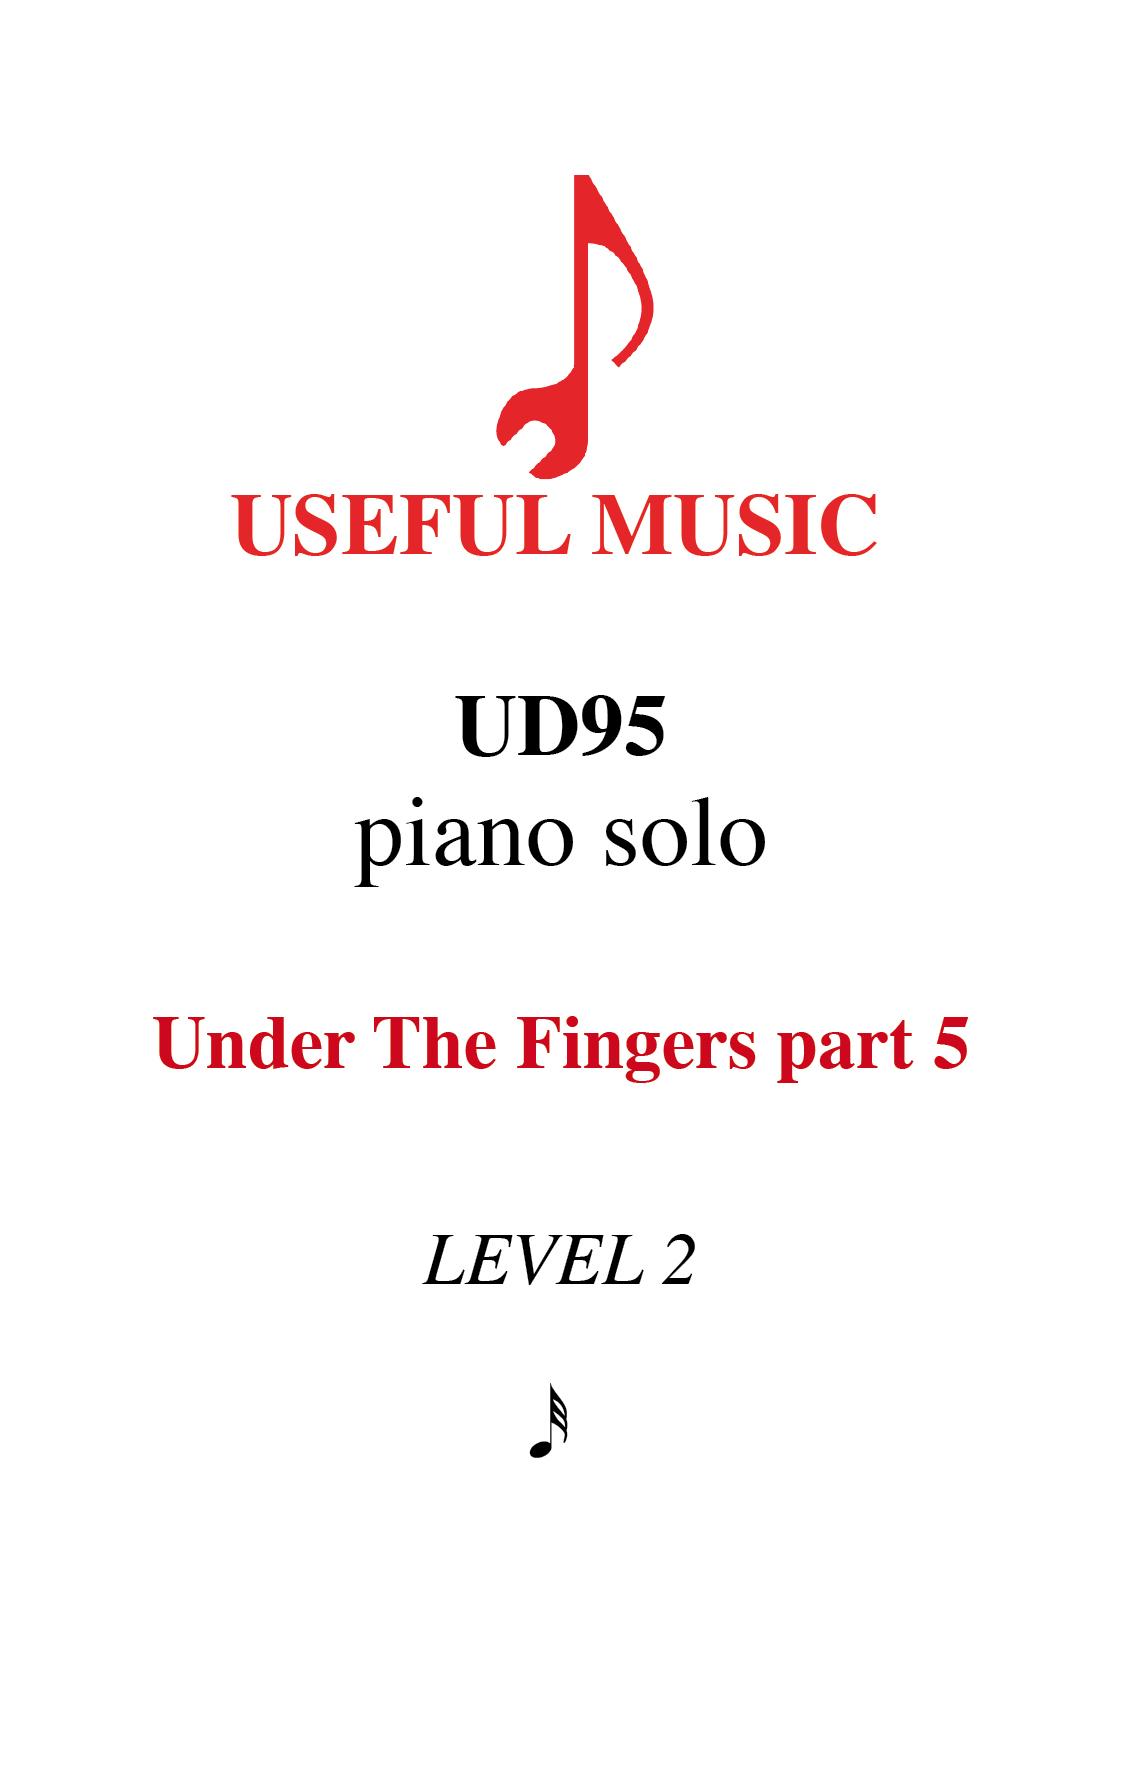 Under The Fingers part 5